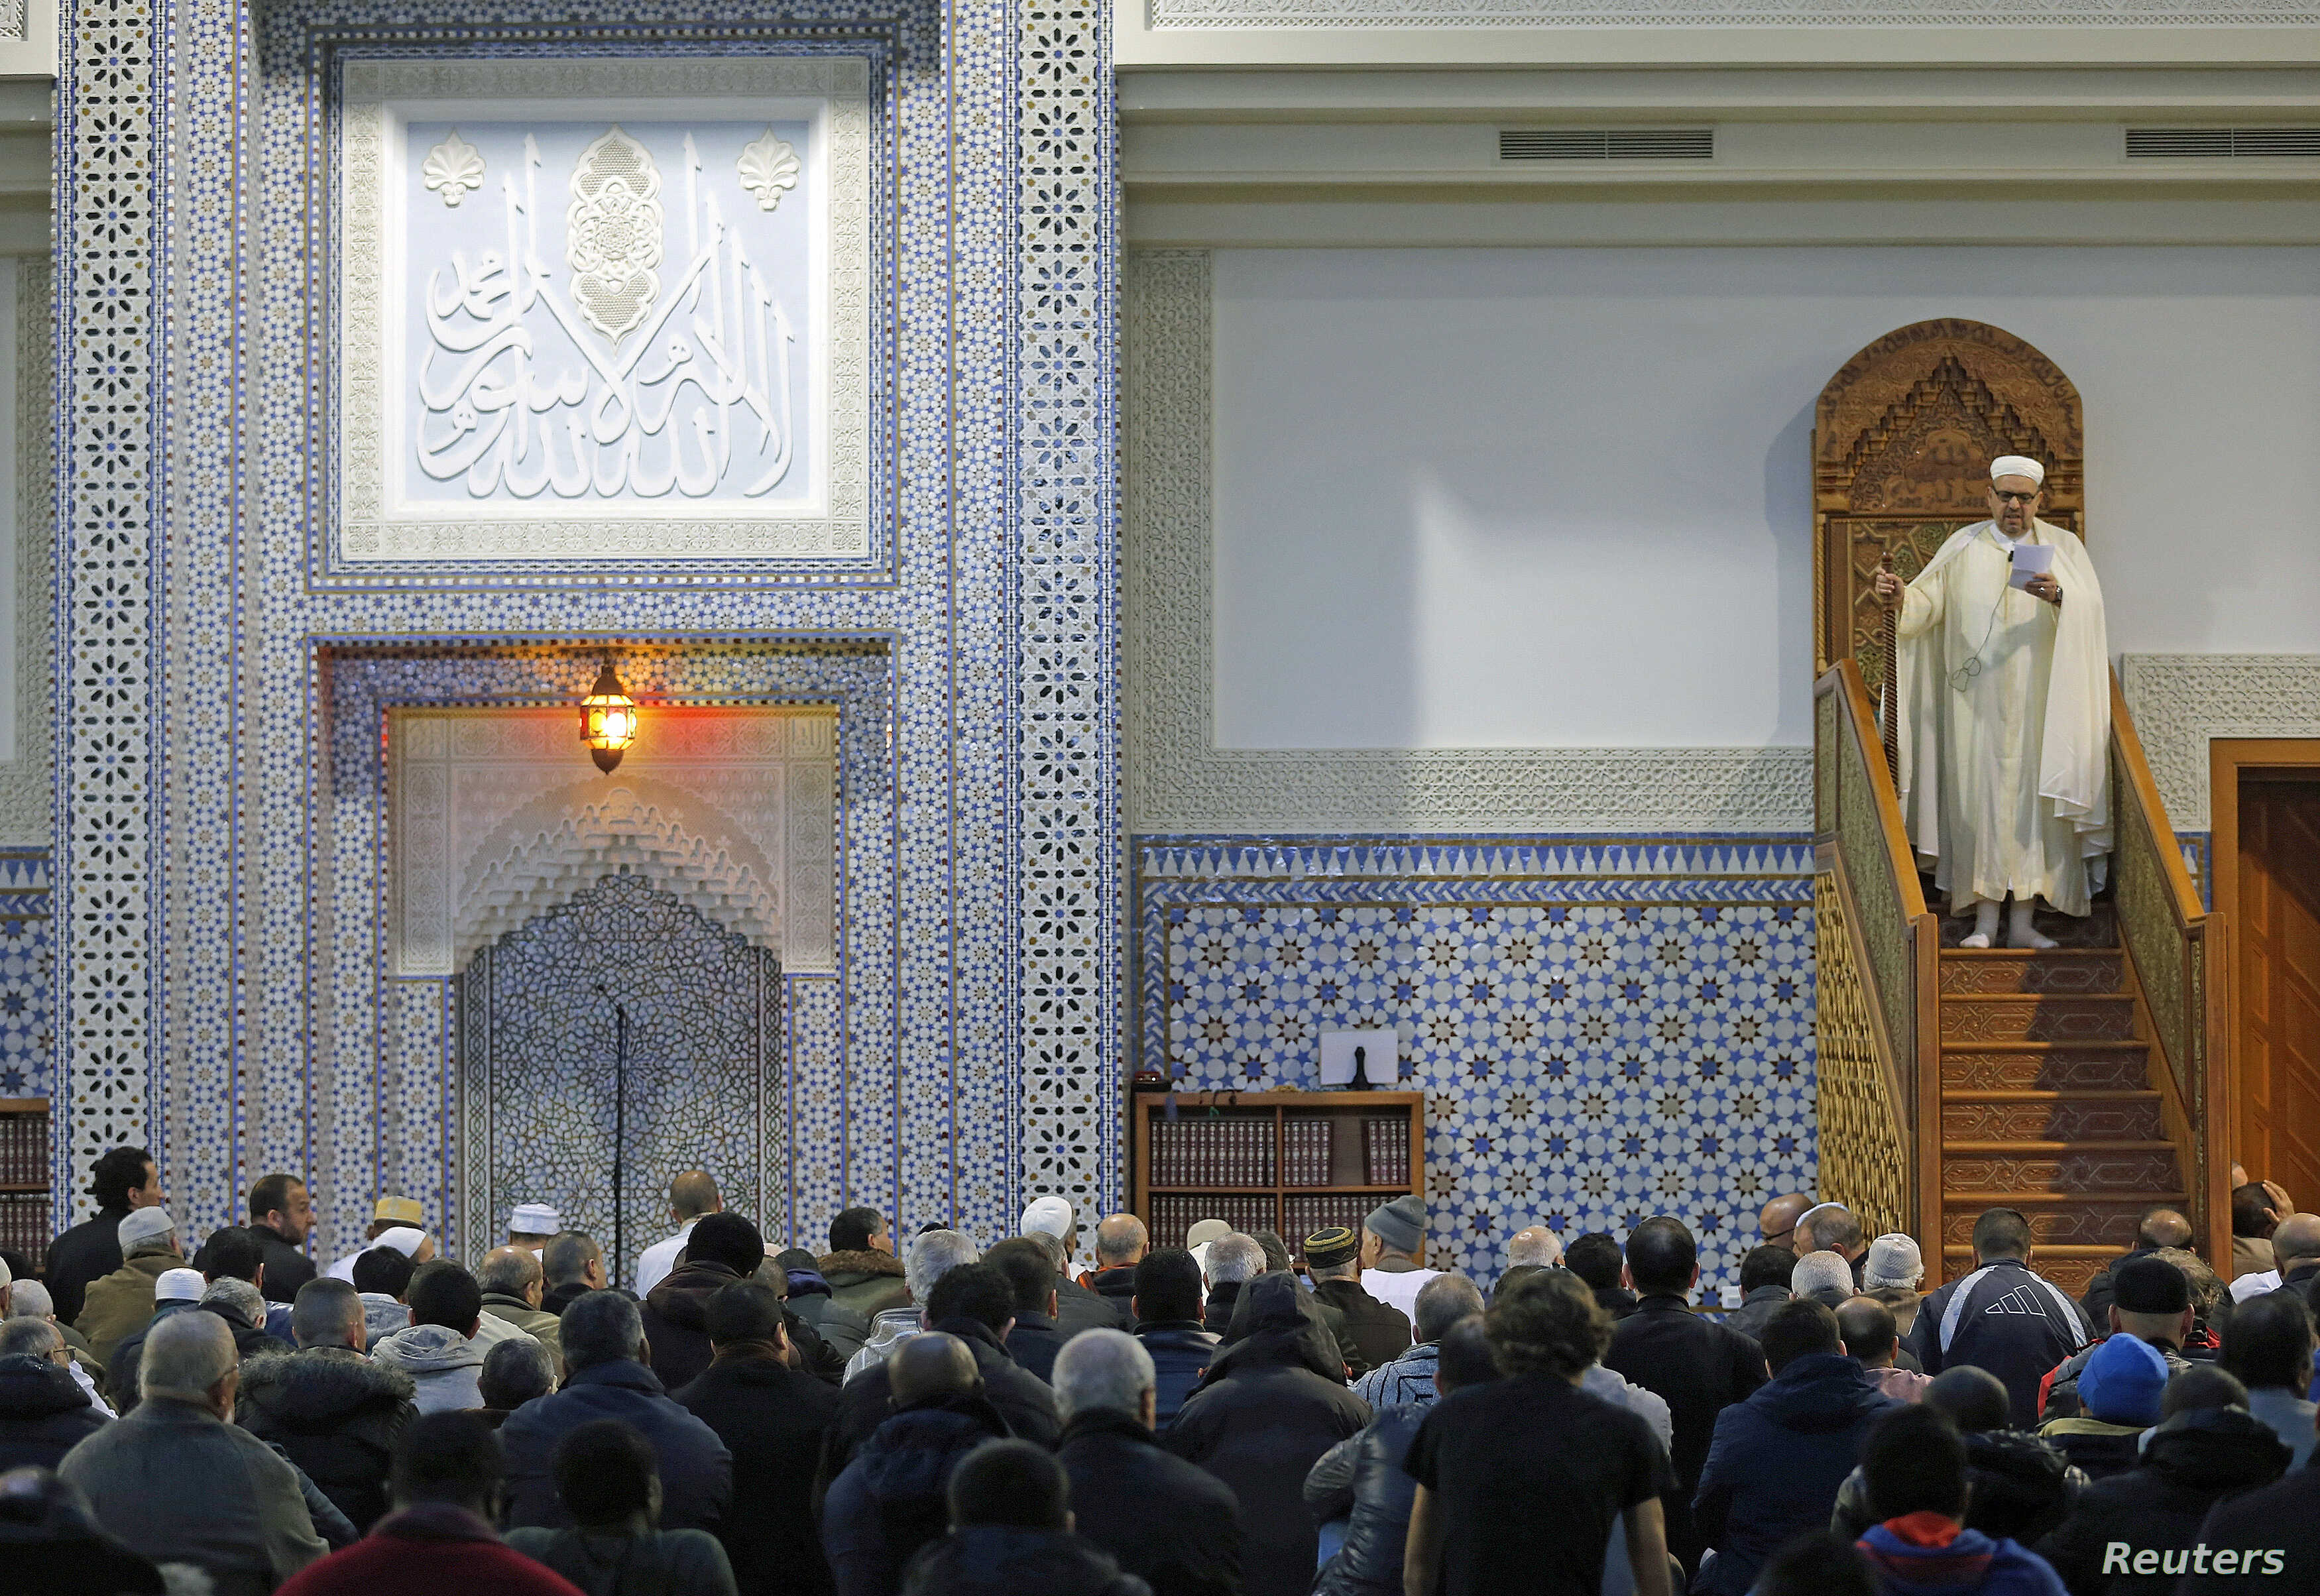 Members of the Muslim community attend the Friday prayer at Strasbourg Grand Mosque, one week after the deadly attacks in Paris, France, Nov. 20, 2015.